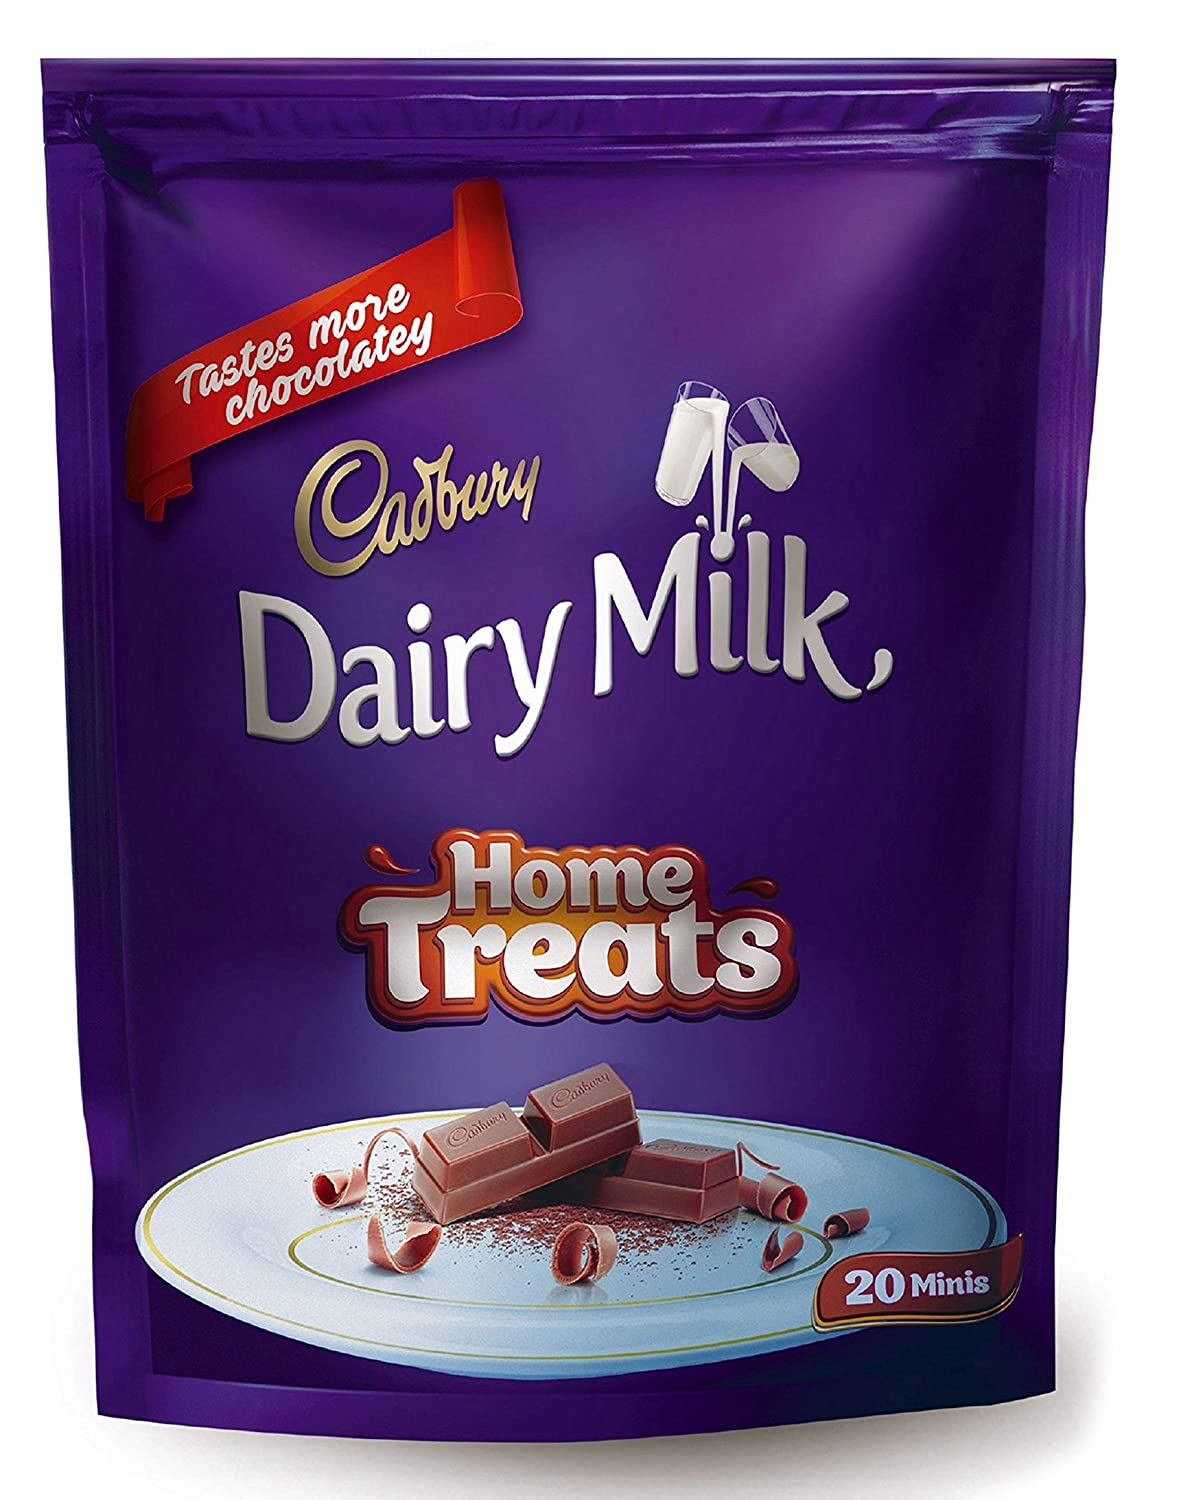 Cadbury Dairy Milk Chocolate Family Pack